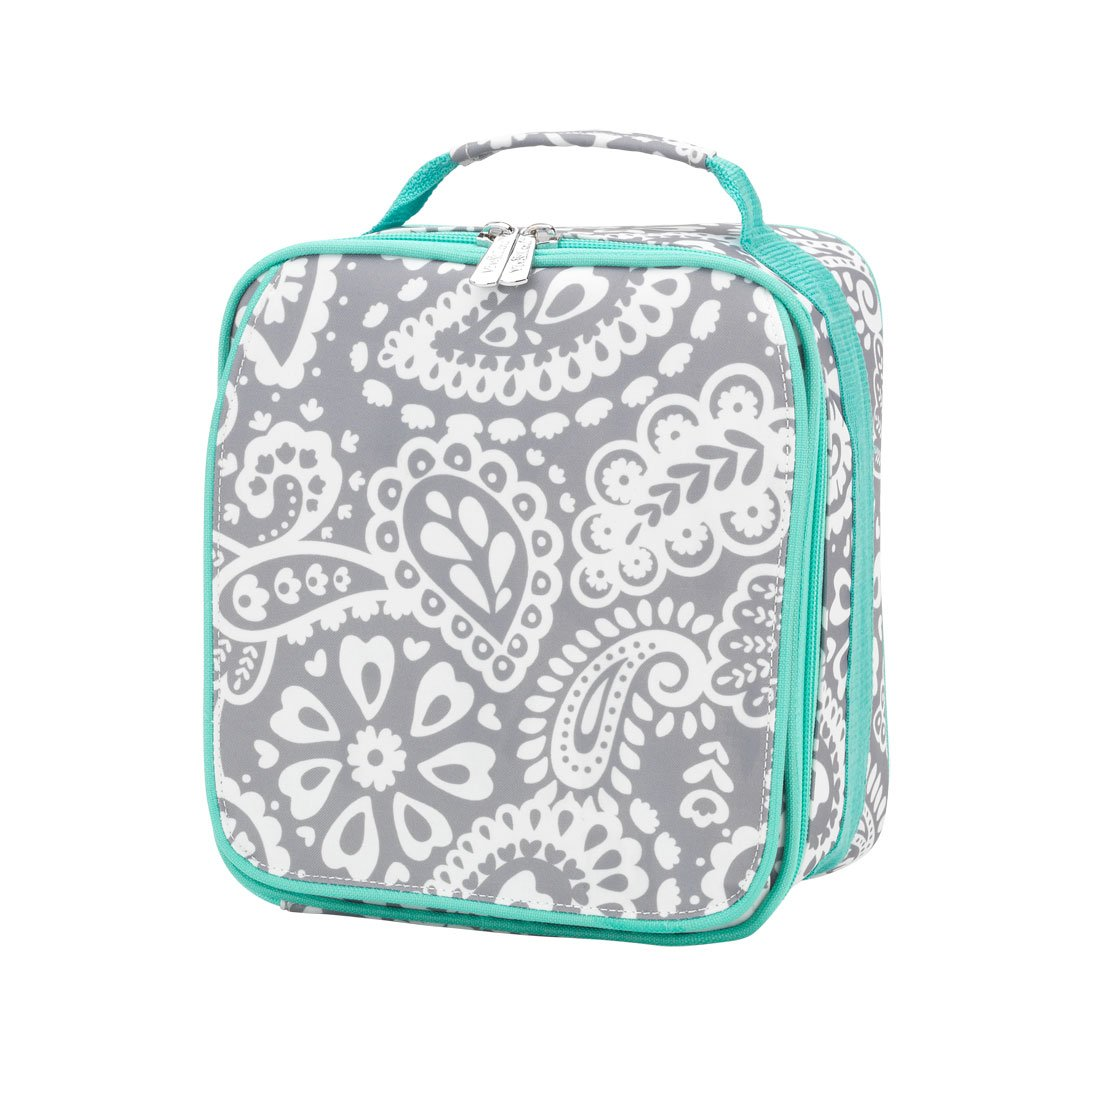 Insulated Water Resistant Lunch Bag - Parker Blue Grey Paisley